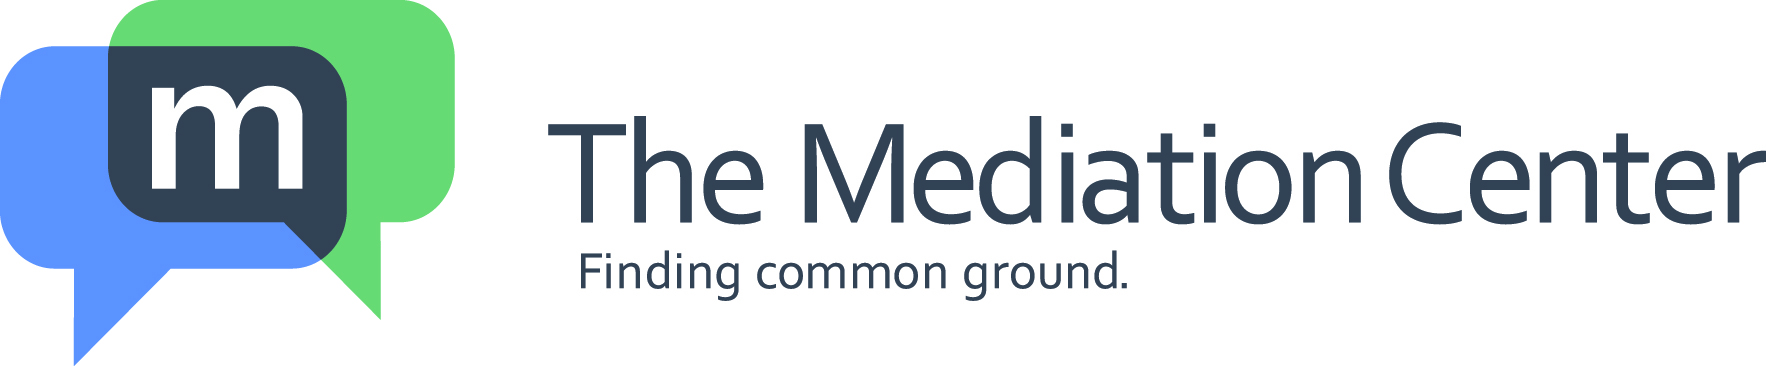 Mediation Center Logo